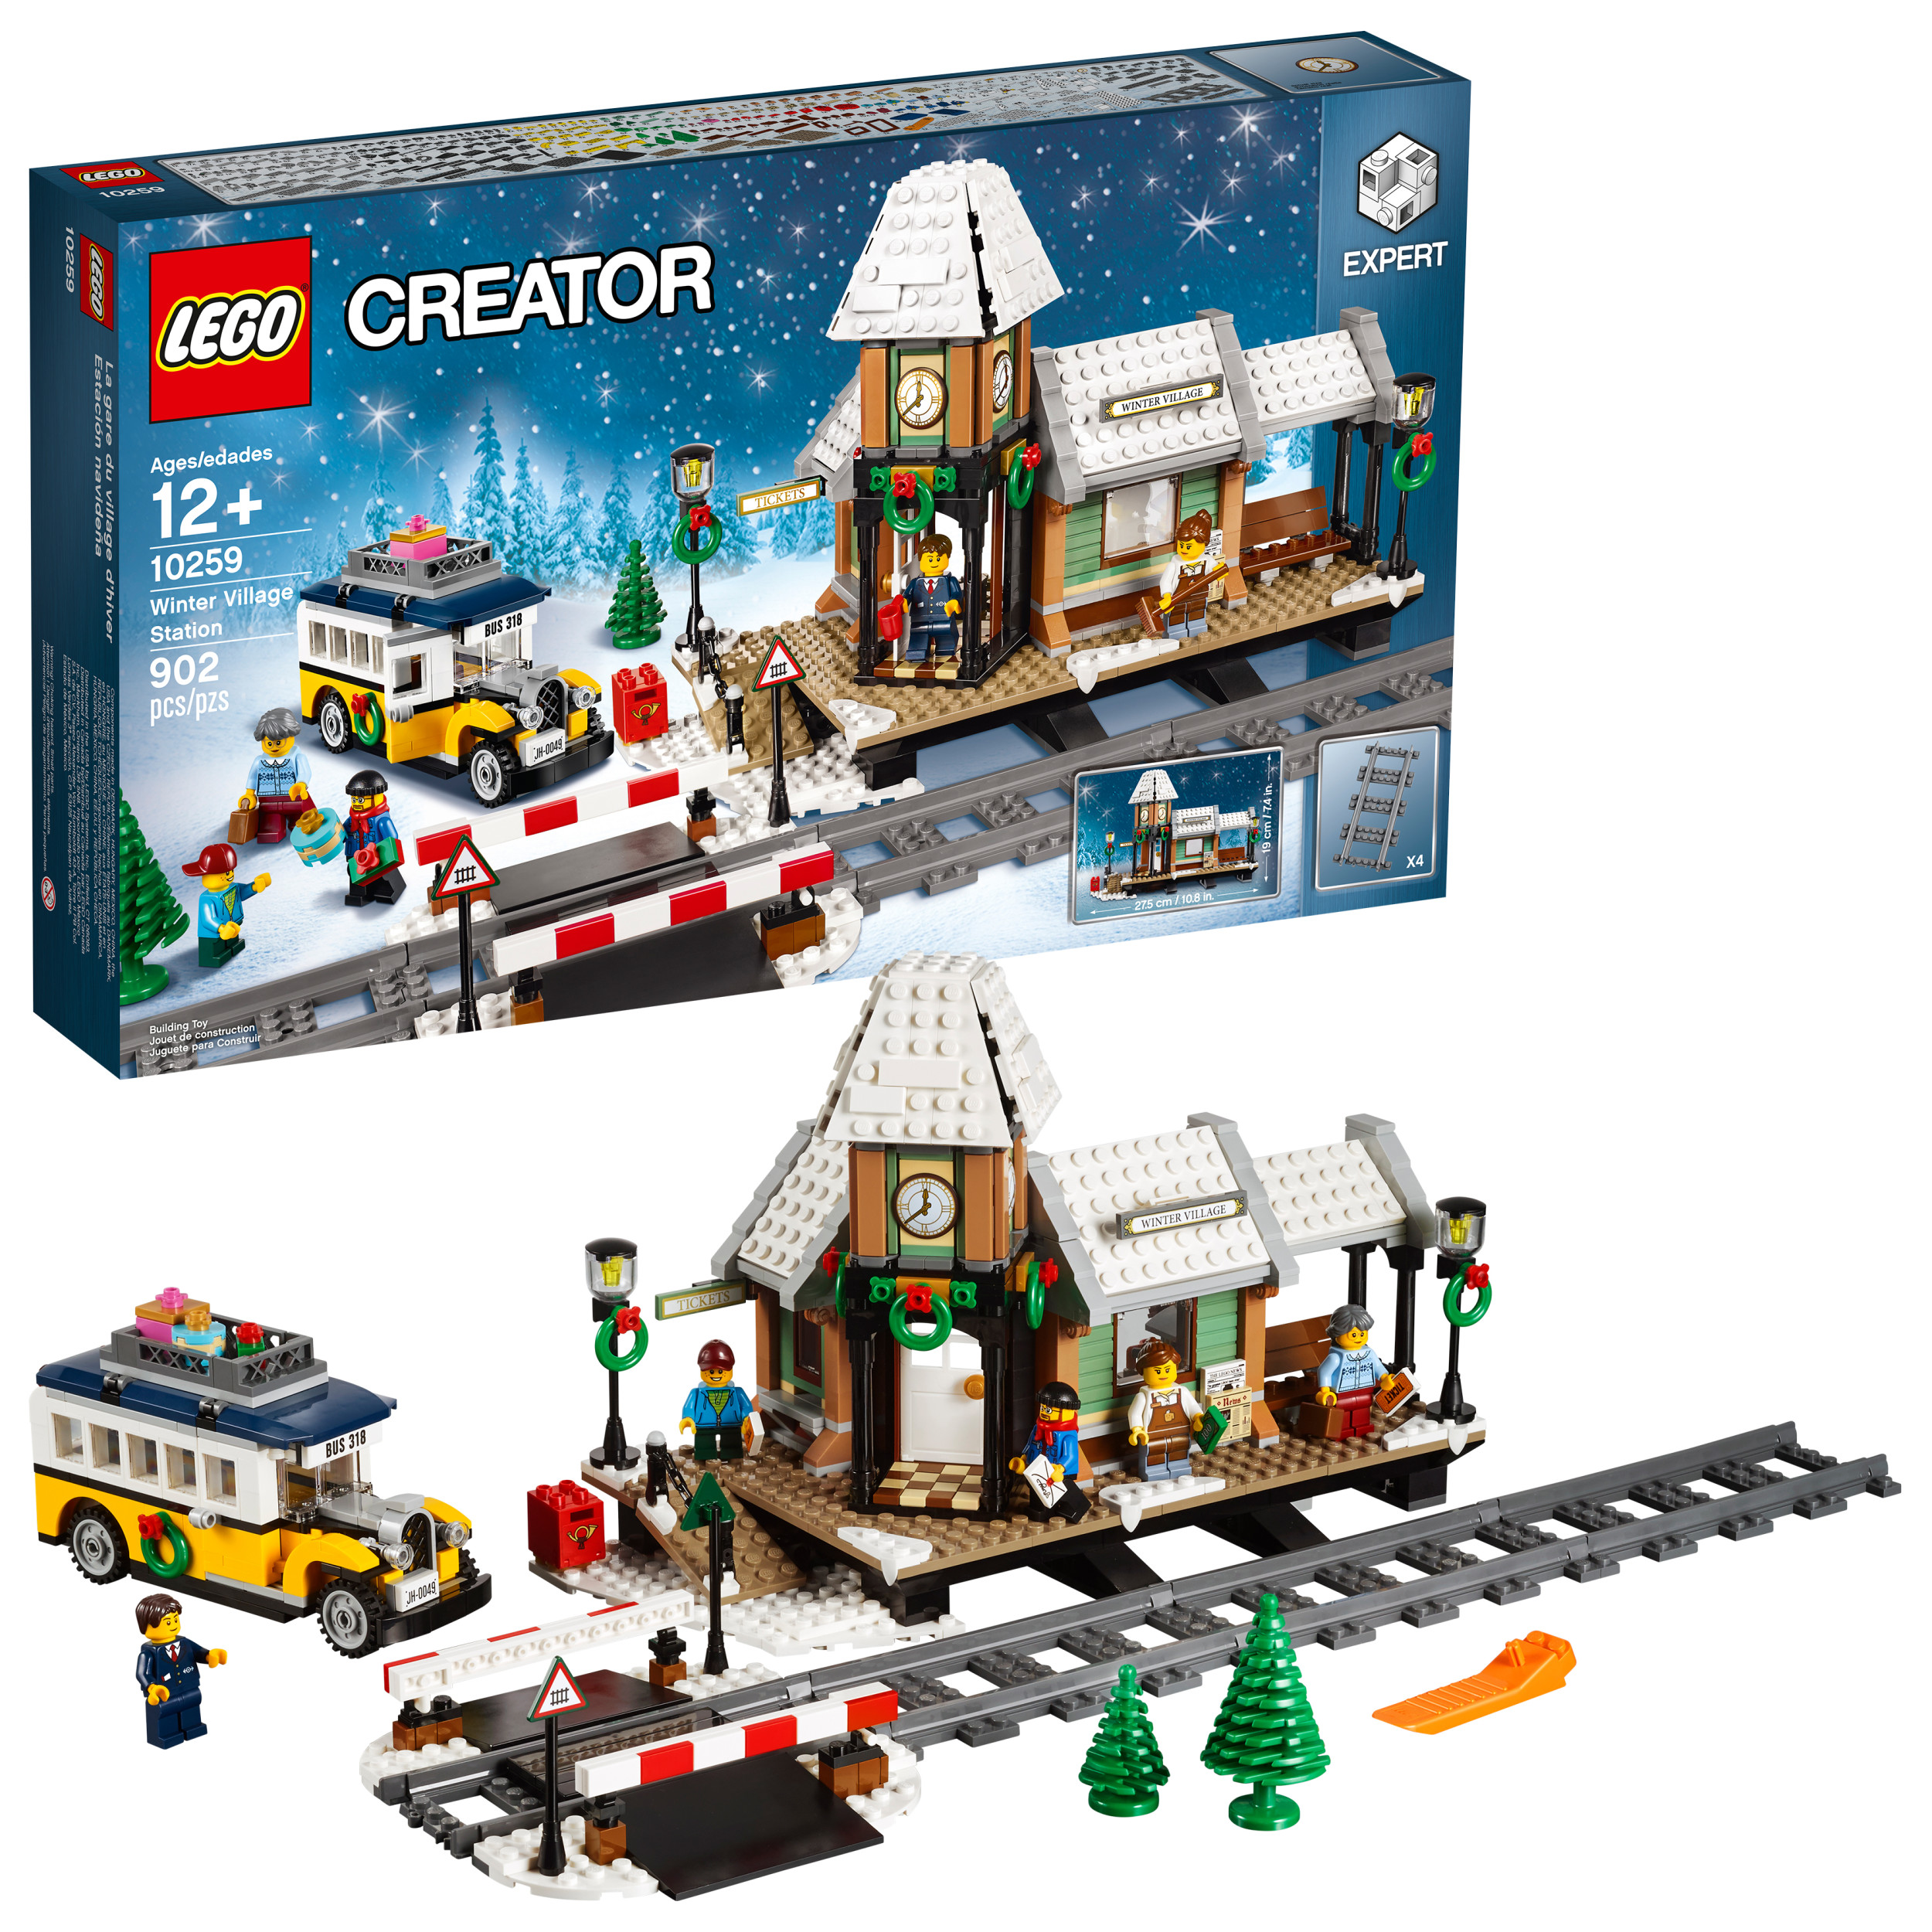 Lego creator expert winter village station 10259 by LEGO System Inc